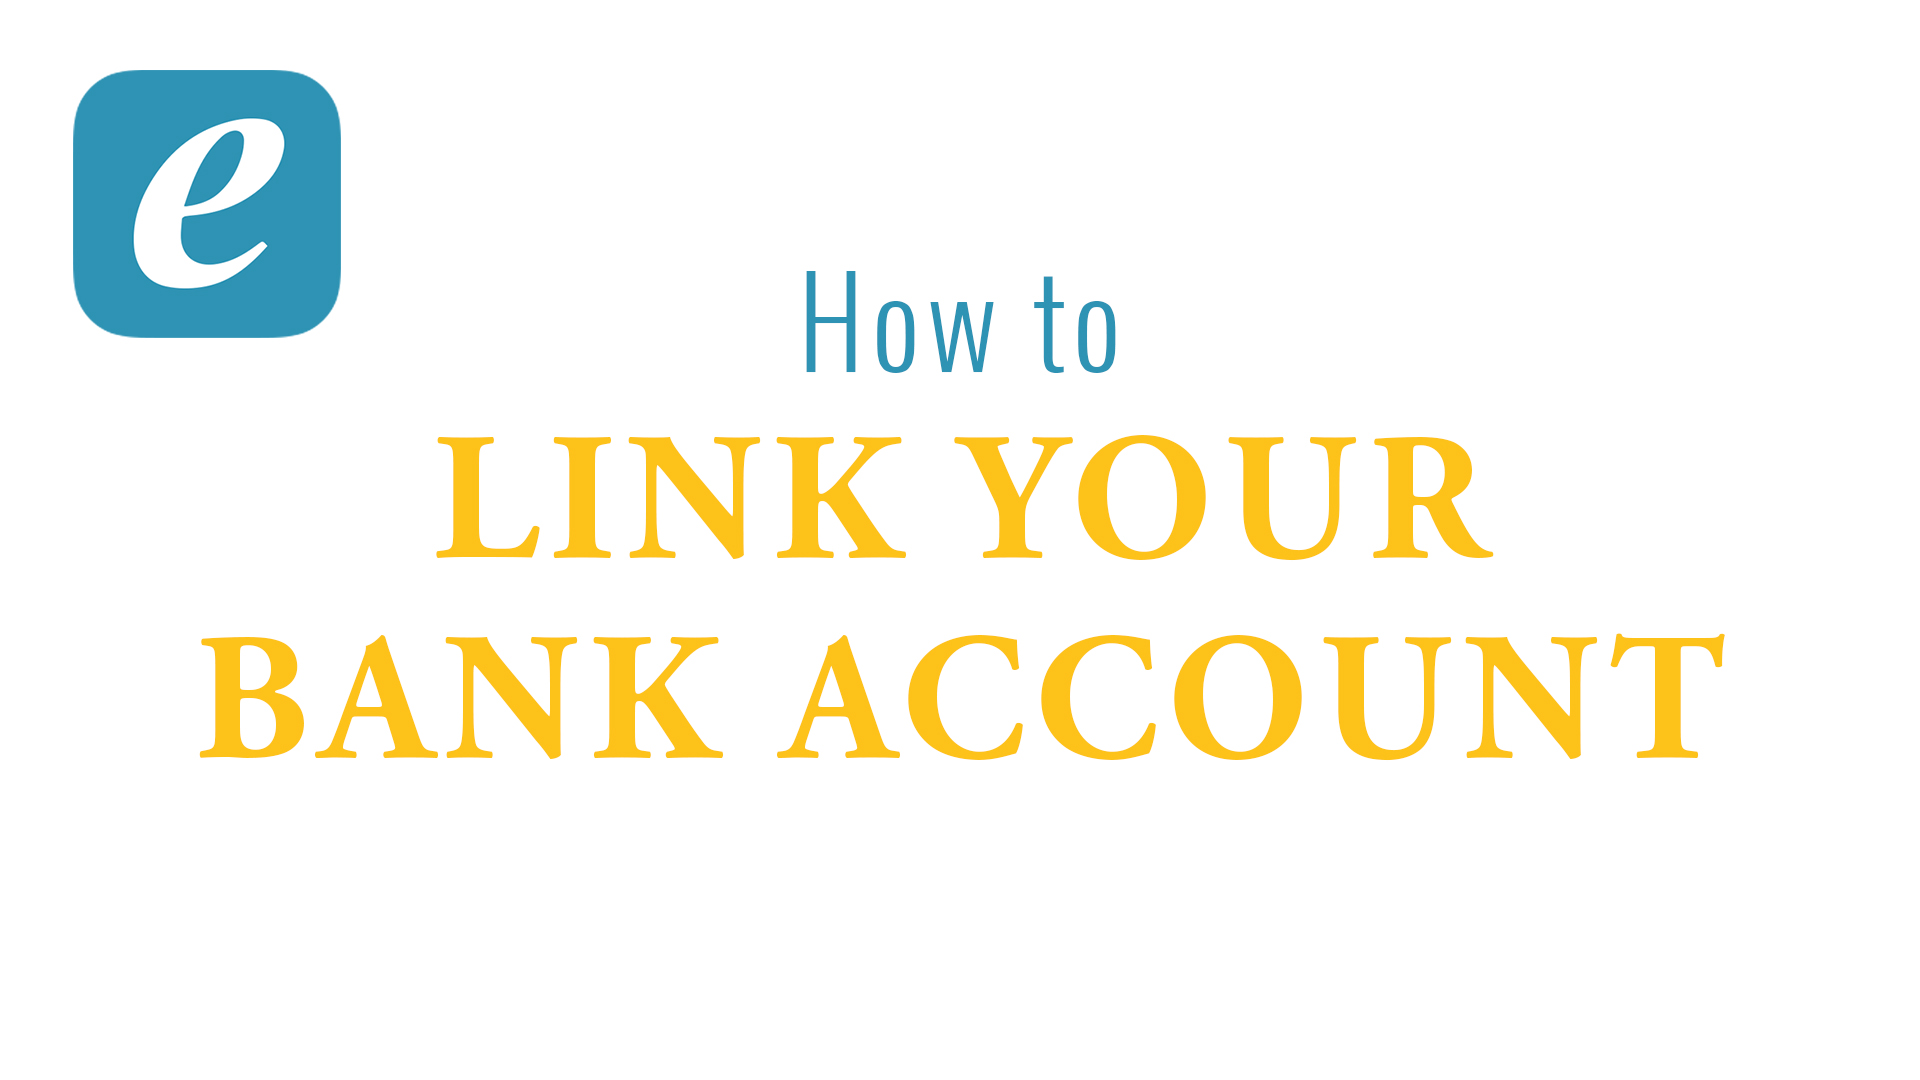 Link Your Bank Account